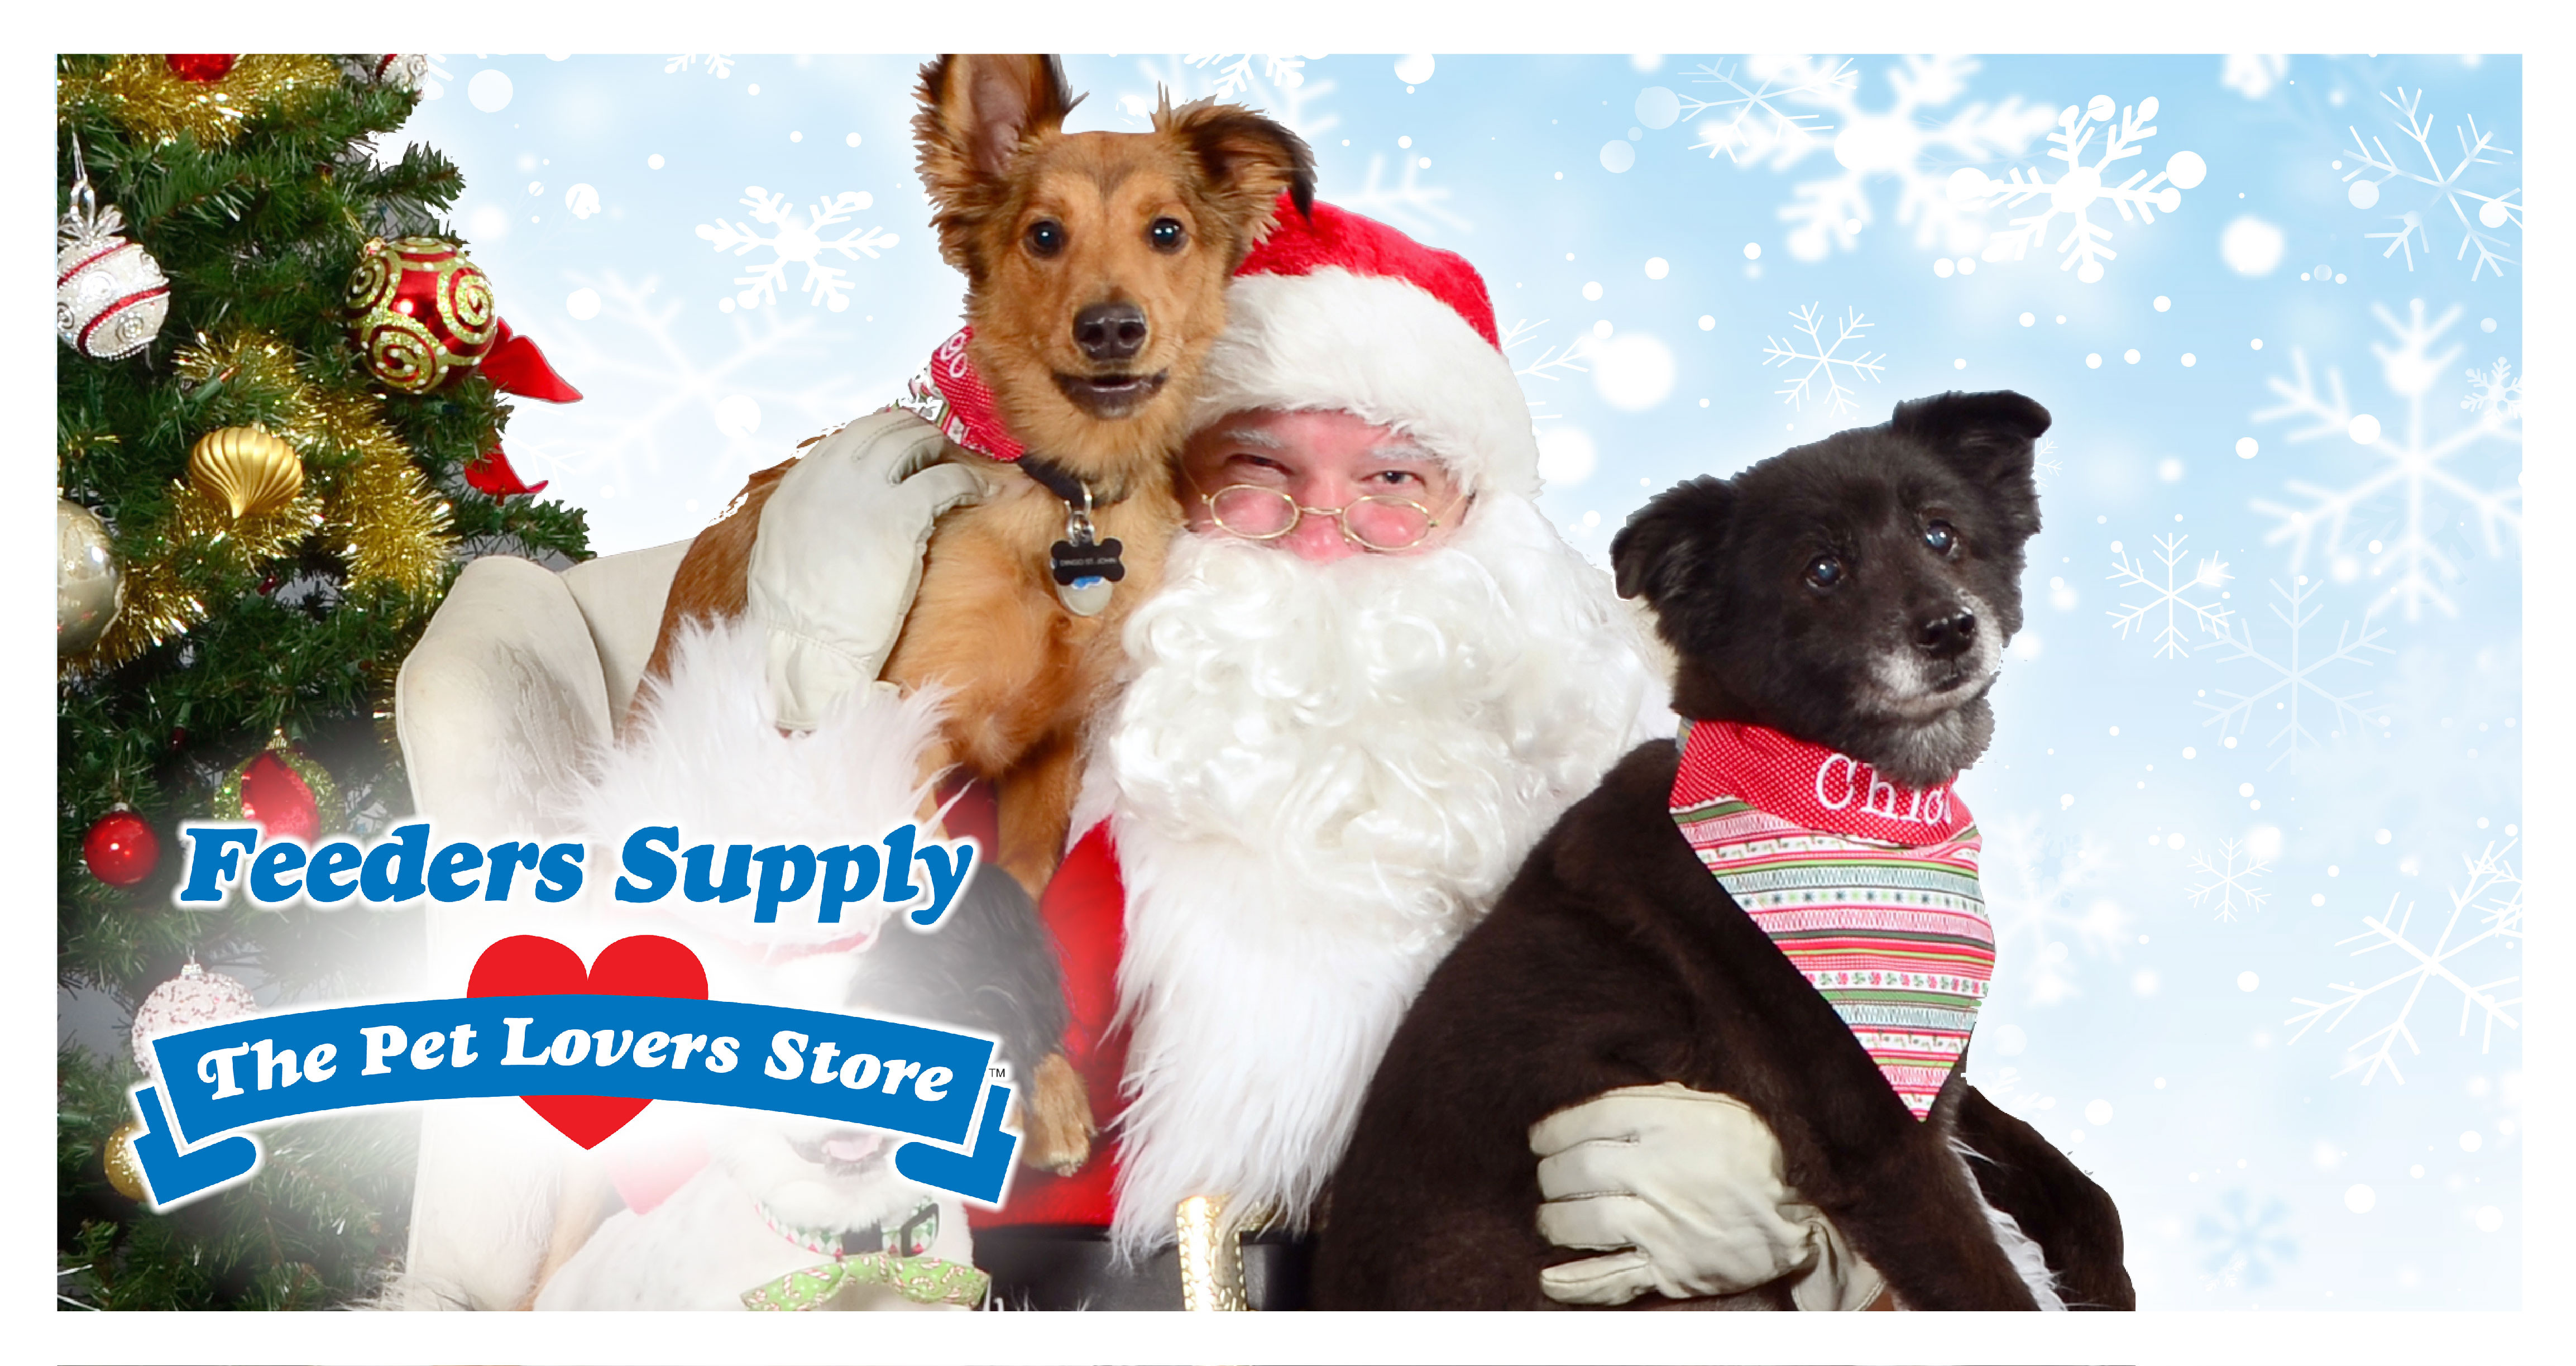 Feeders Supply Picture Your Pets With Santa